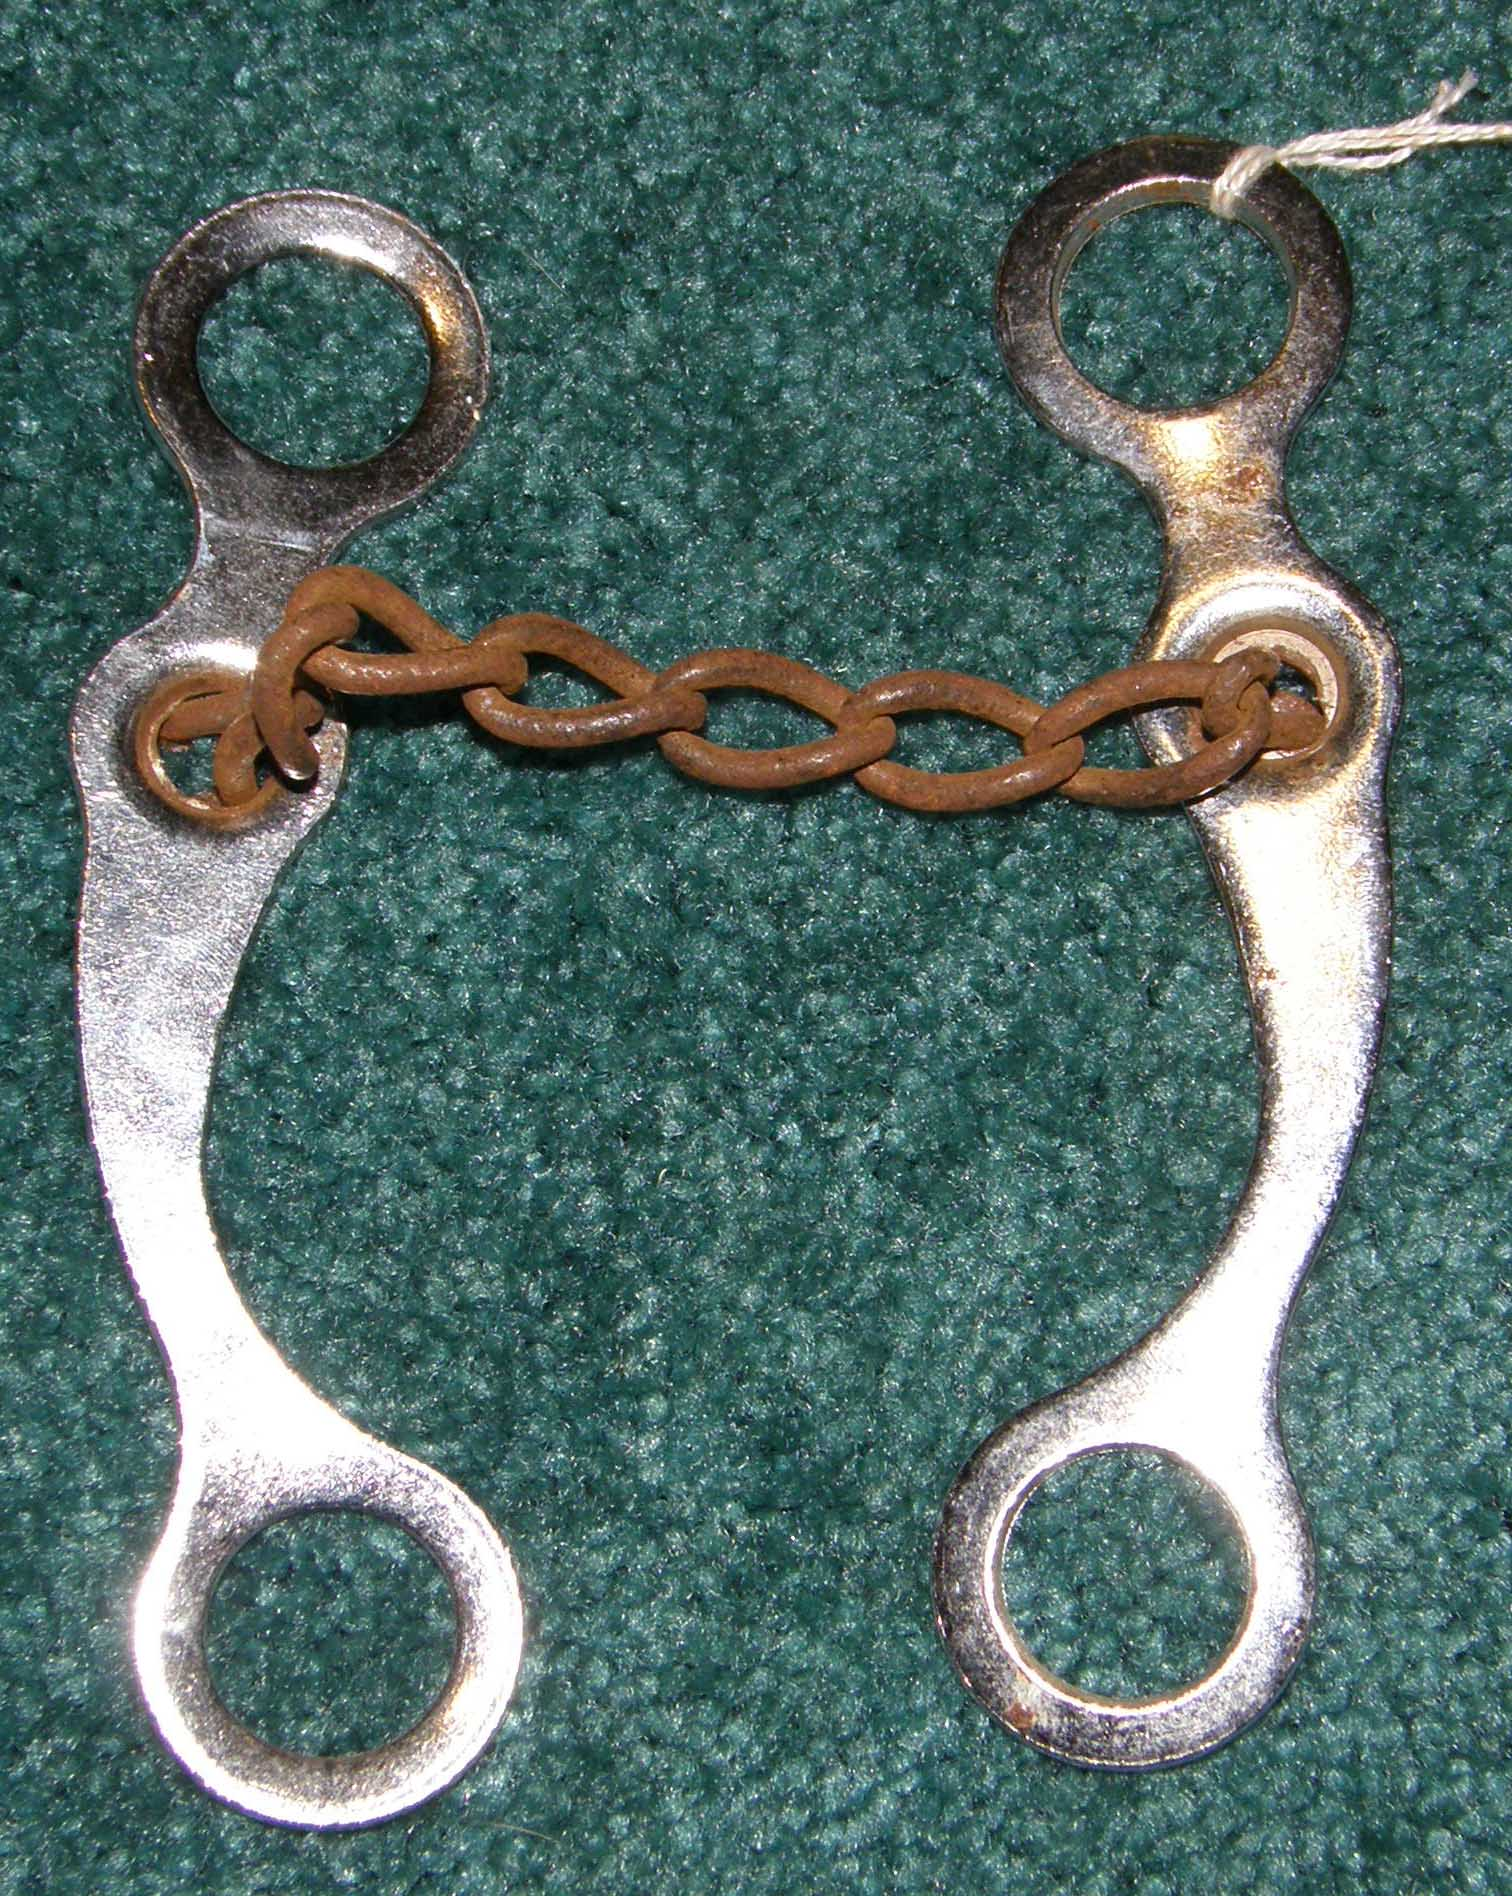 Chain Mouth Curb Bit Sweet Iron Chain Roping Bit Western Curb Bit or Make Your Own Curb Bit Replacement Bit Shanks